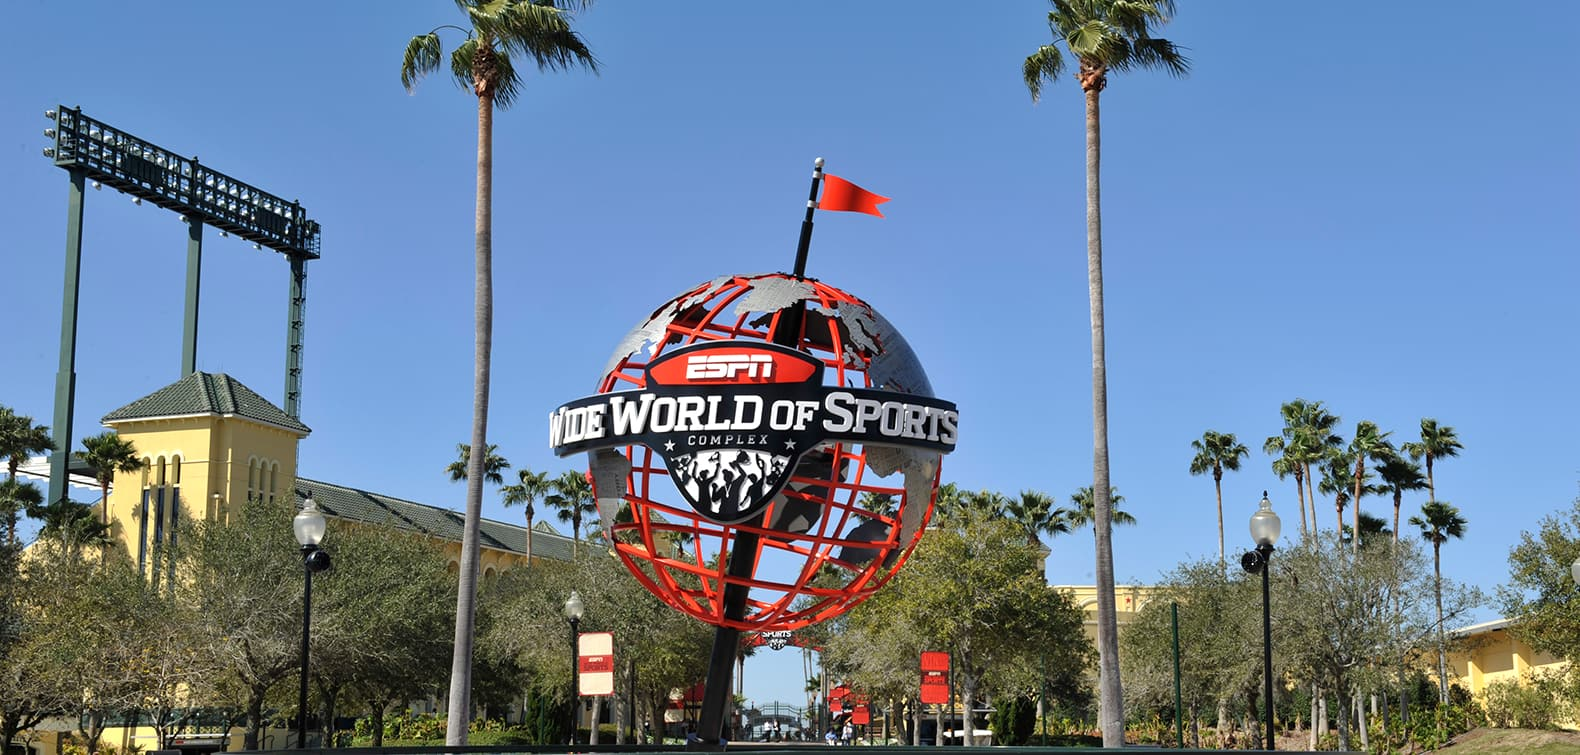 Resultado de imagen para ESPN Wide World of Sports DRONE